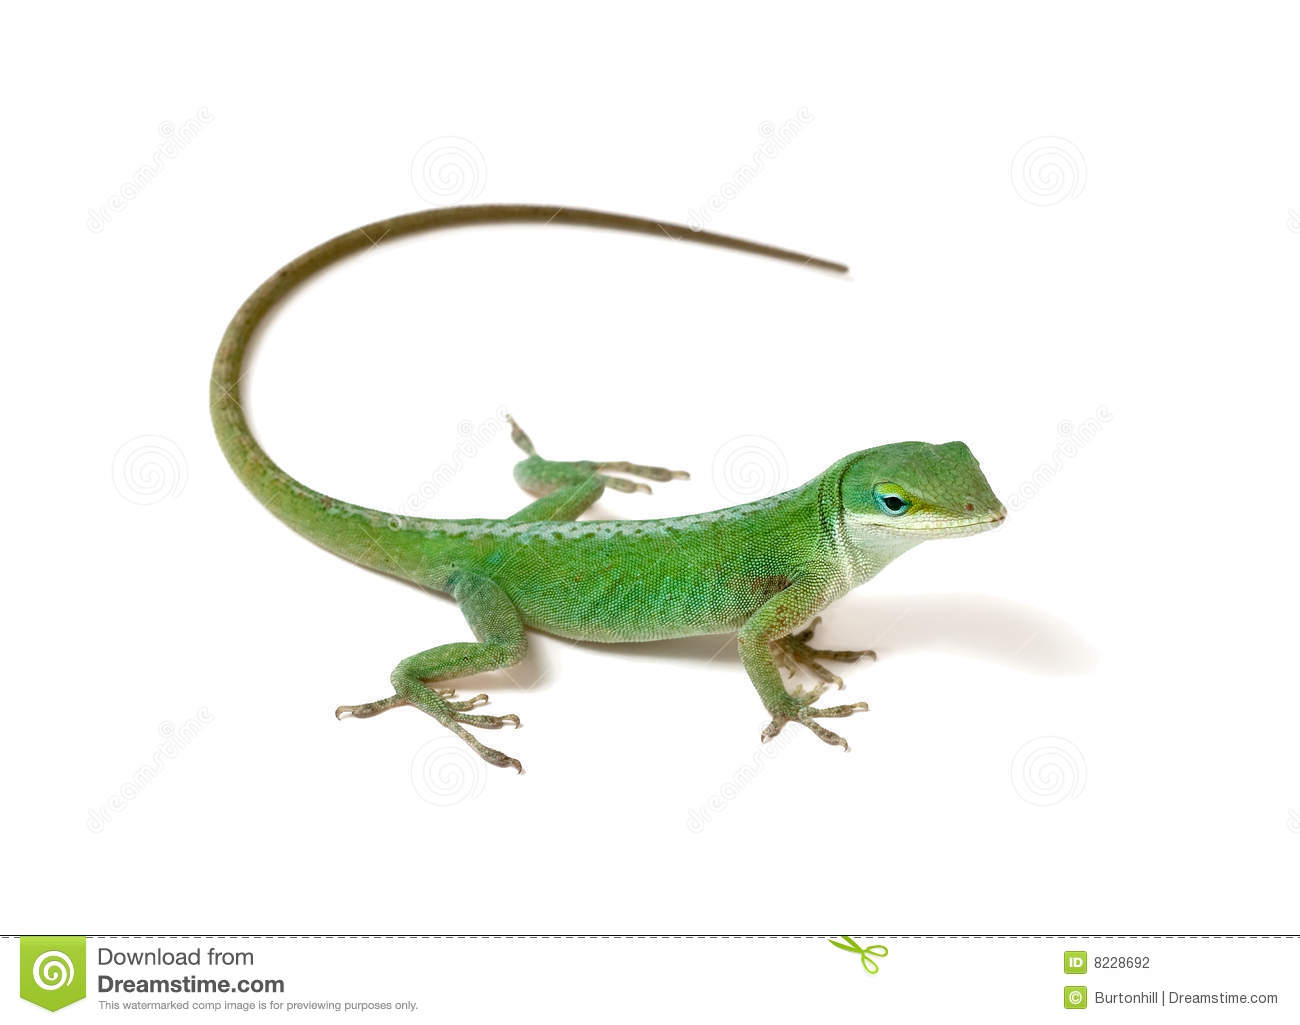 Green Anole clipart #20, Download drawings